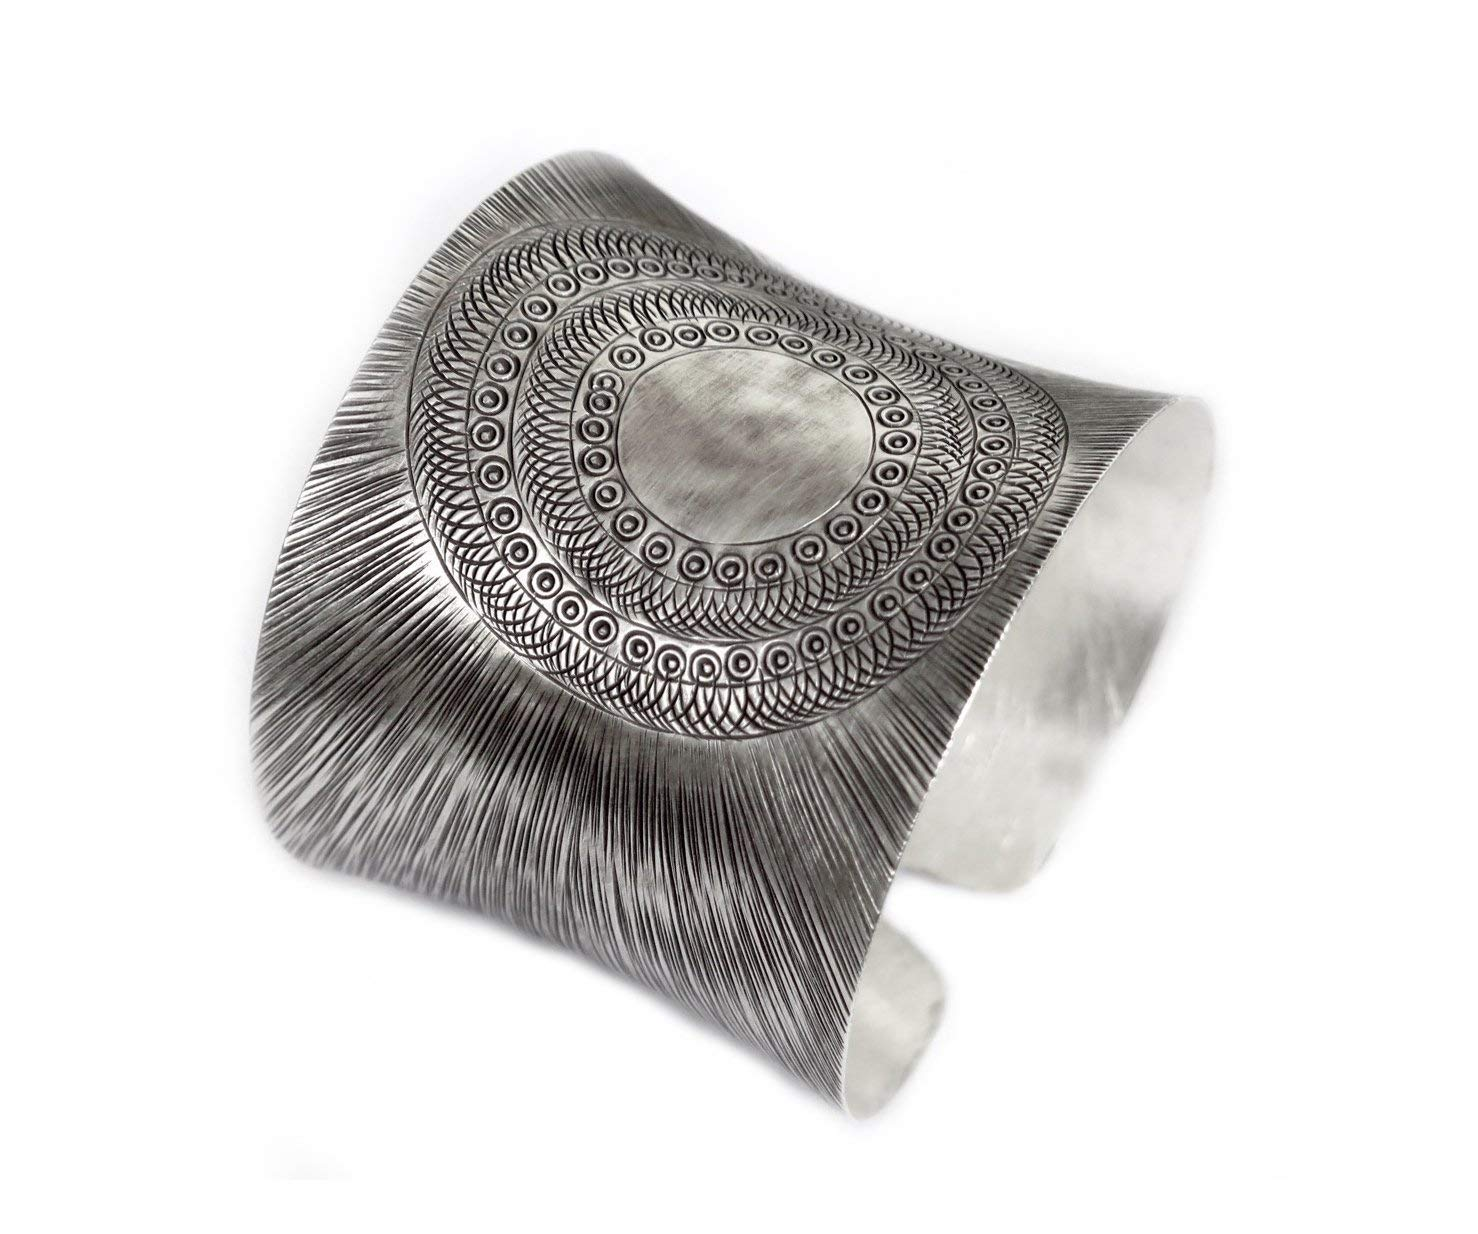 Handmade Sterling Silver Wide Cuff Bracelet, Scratched lines Texture Wide Cuff, Boho Wide Statement Silver cuff Bracelet, a Beautiful Gift for Her